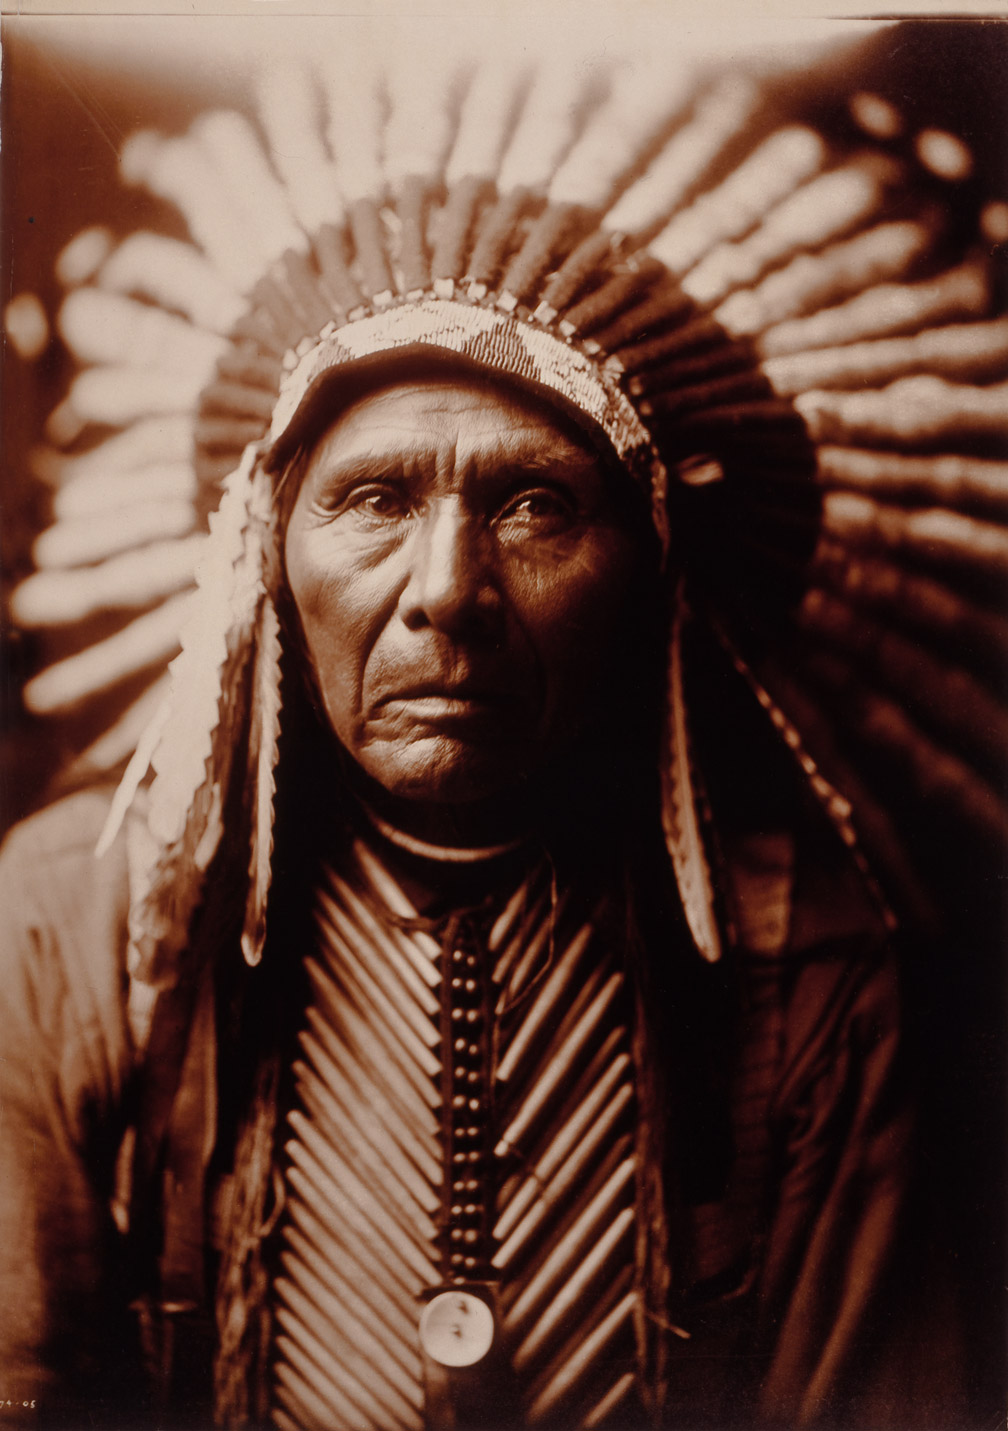 A look at the alcohol culture of indians in eastern north america in the 1800s